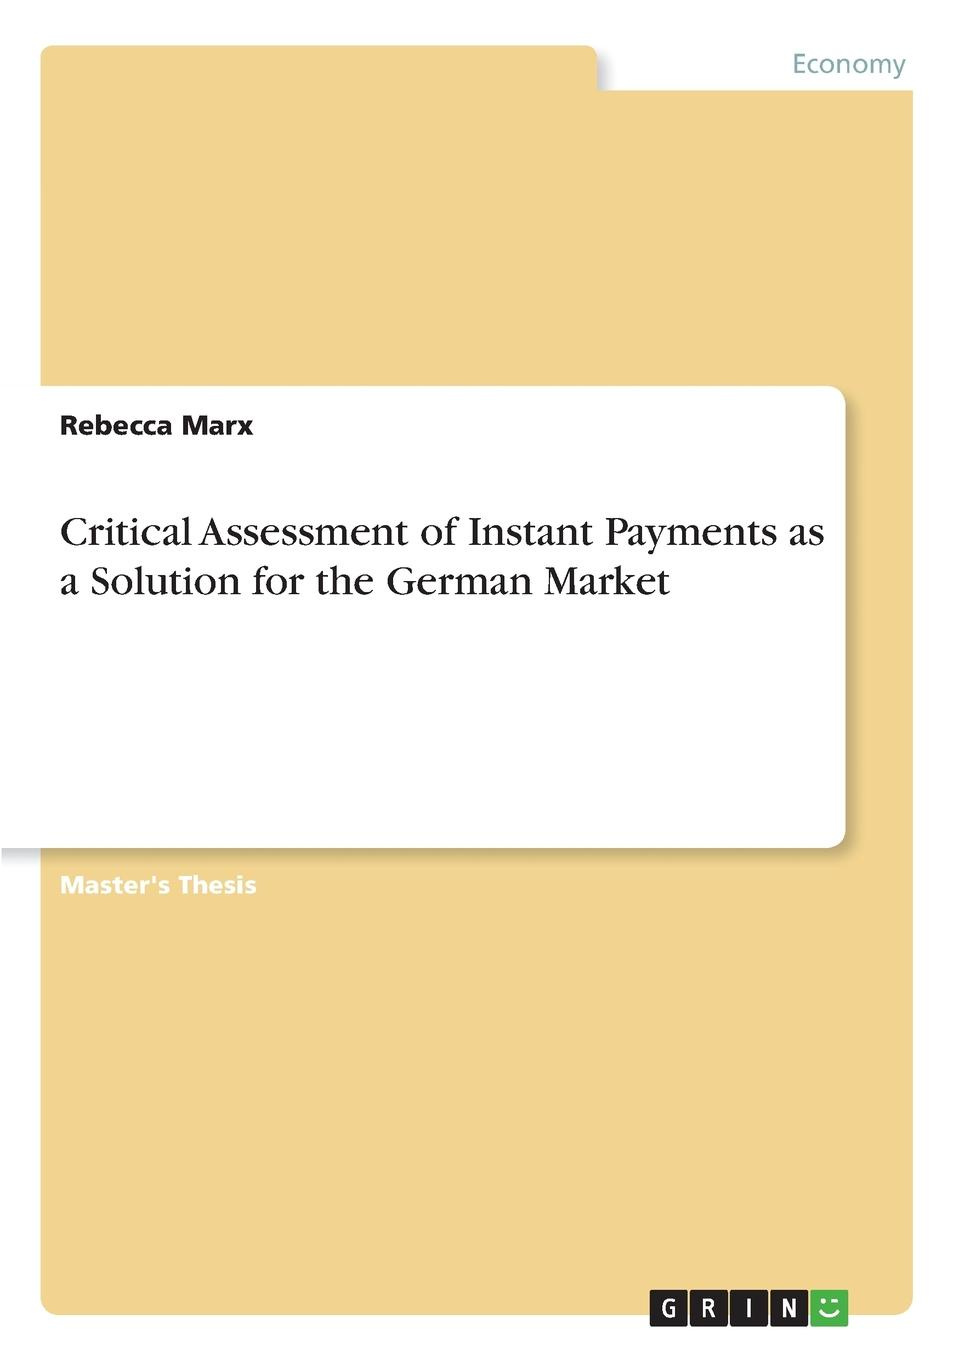 все цены на Rebecca Marx Critical Assessment of Instant Payments as a Solution for the German Market онлайн